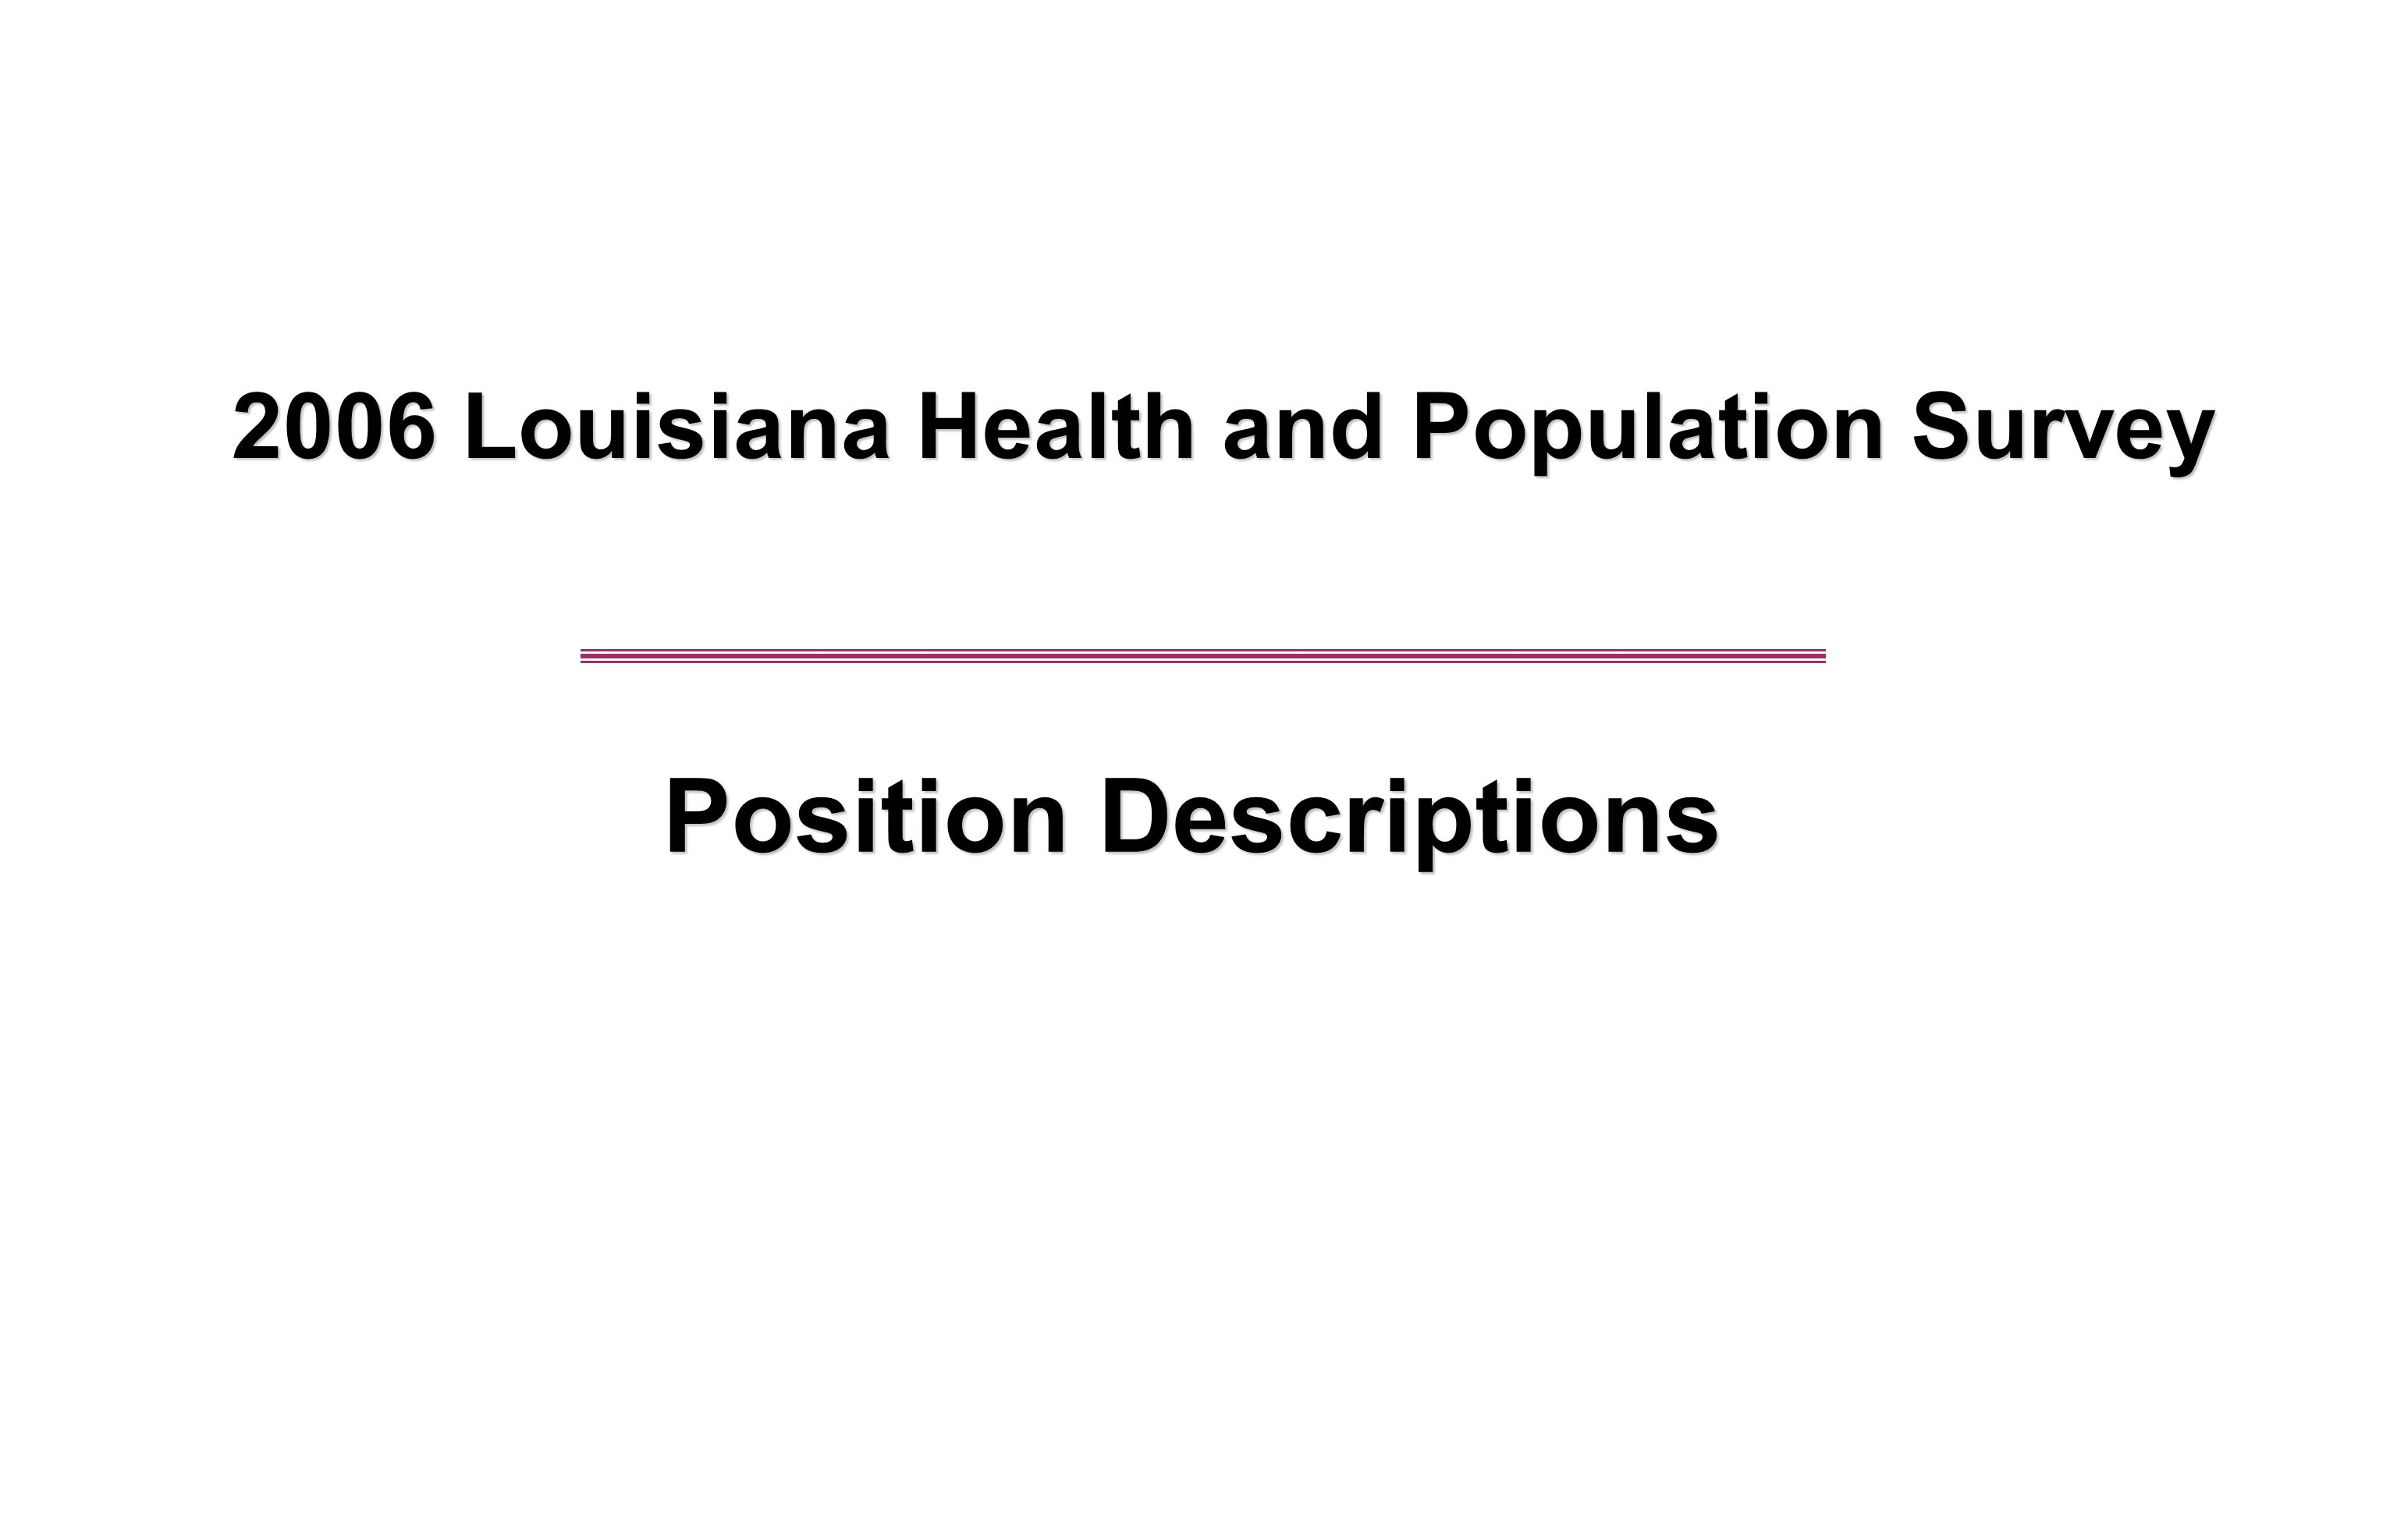 2006 Louisiana Health and Population Survey Position Descriptions